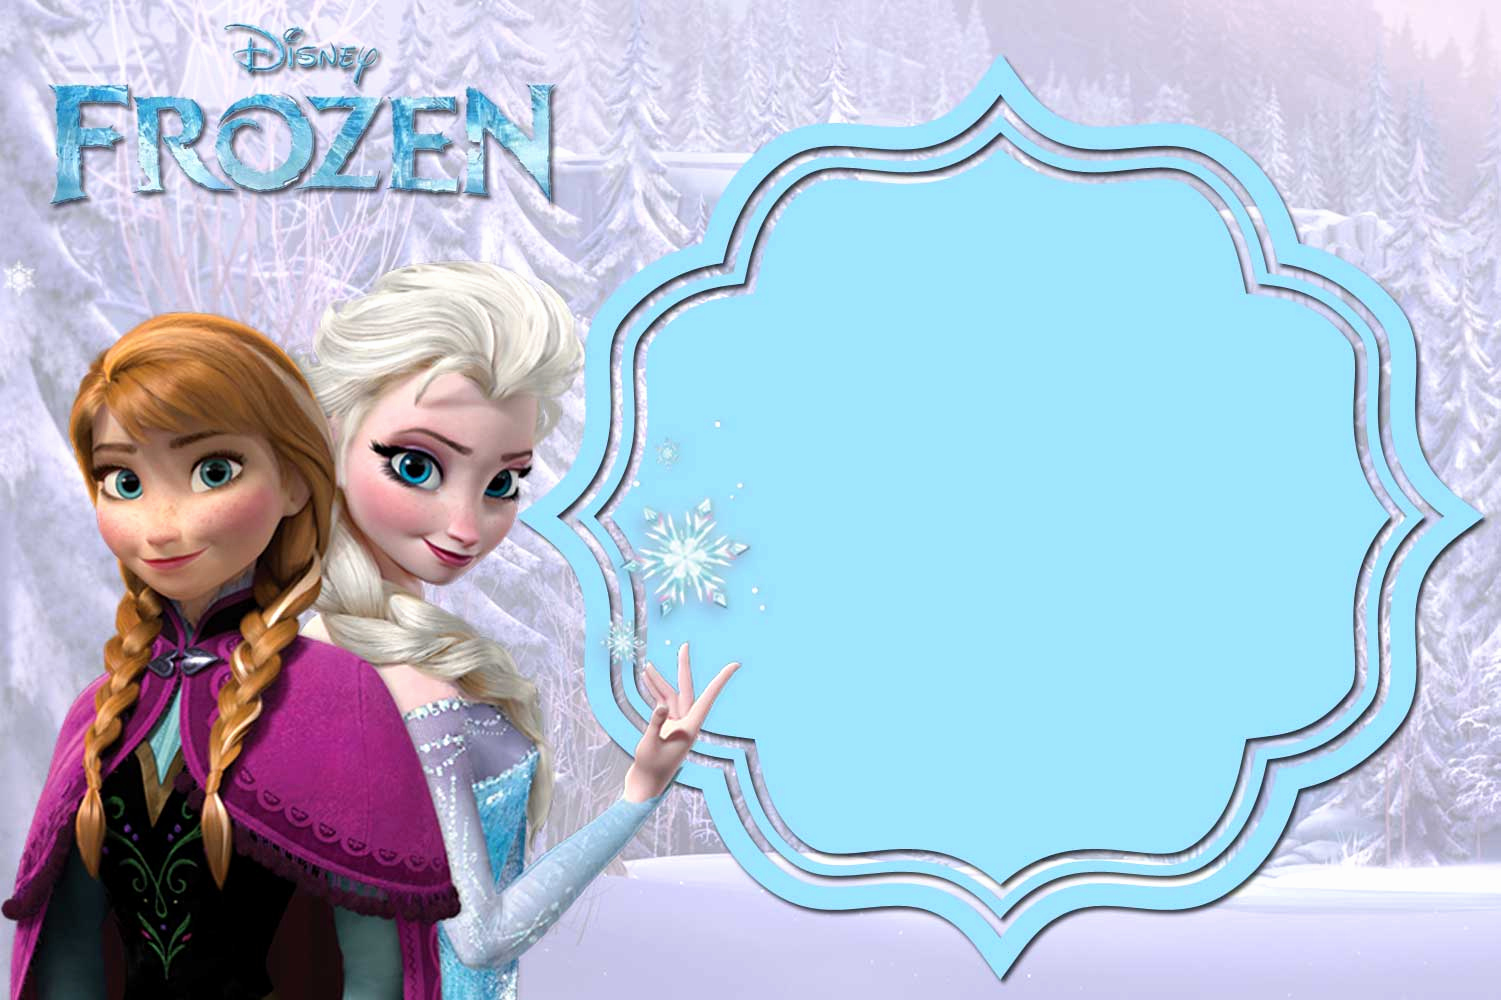 Free Printable Frozen Invitation Templates Lovely Free Printable Frozen Anna and Elsa Invitation Templates